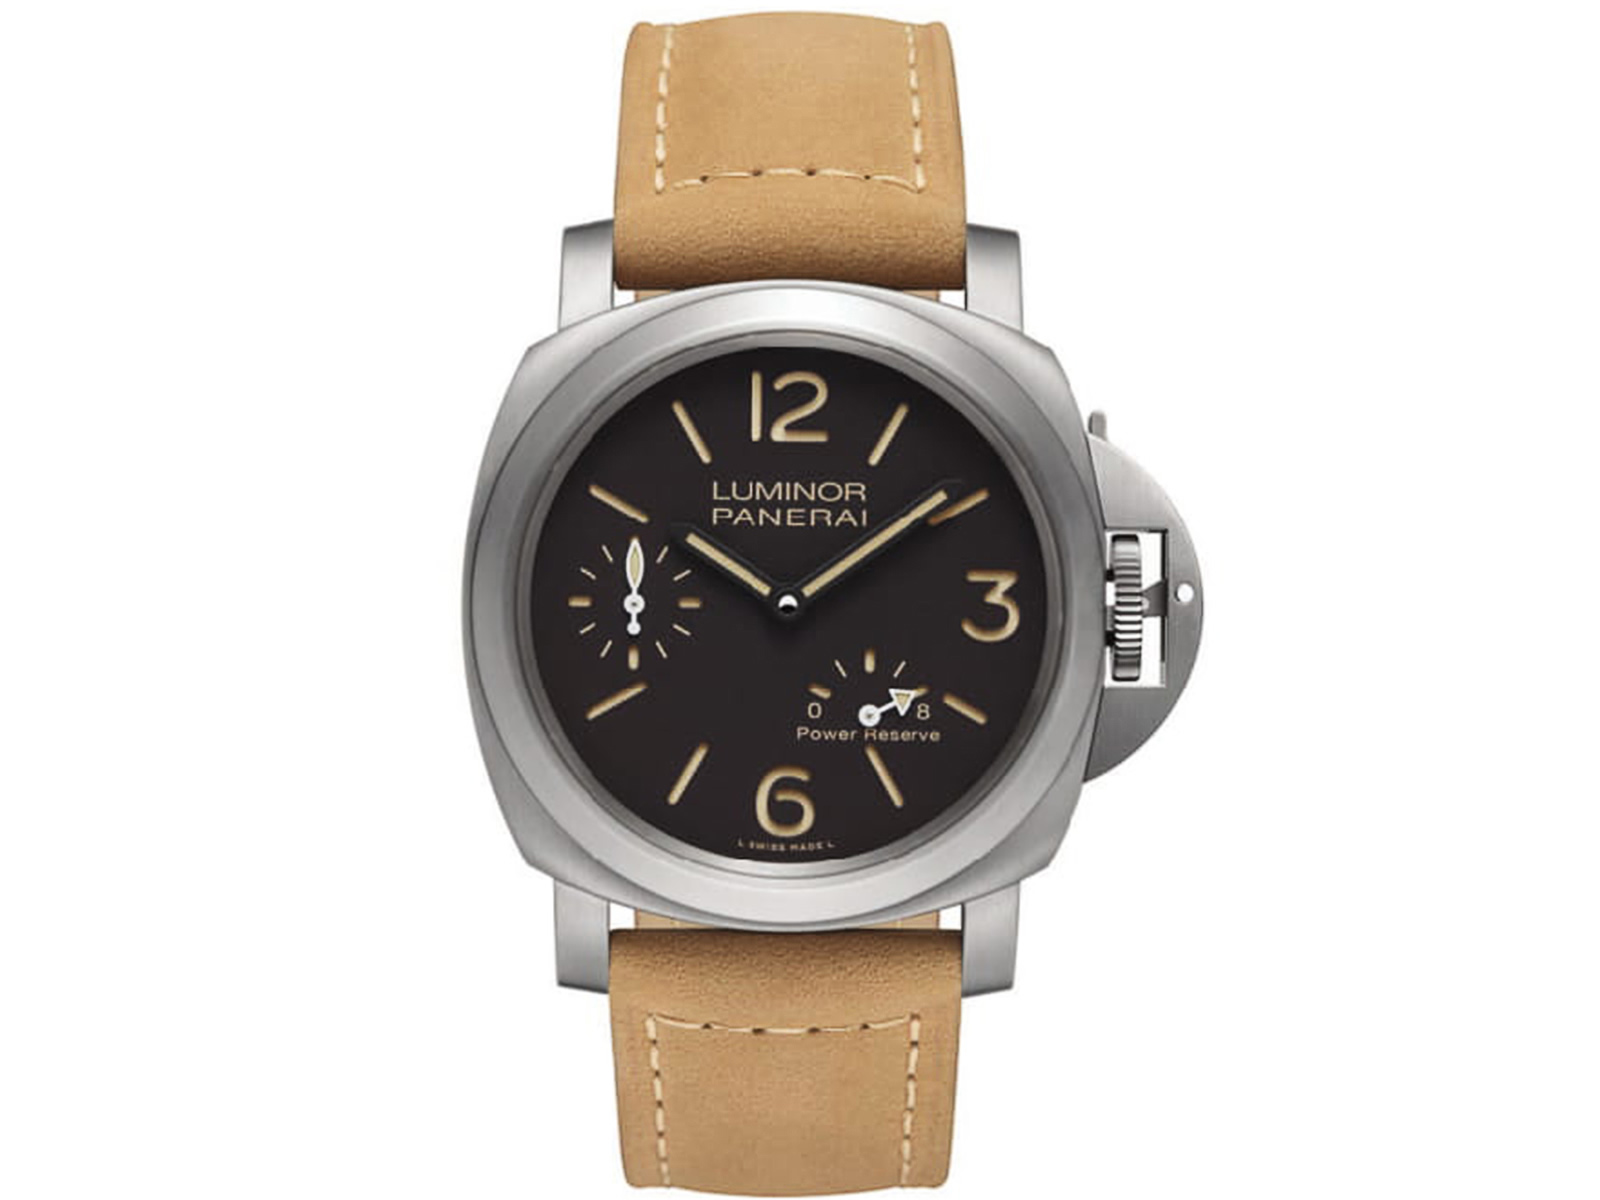 pam00797-officine-panerai-luminor-8-days-power-reserve-acciaio-44mm-.jpg